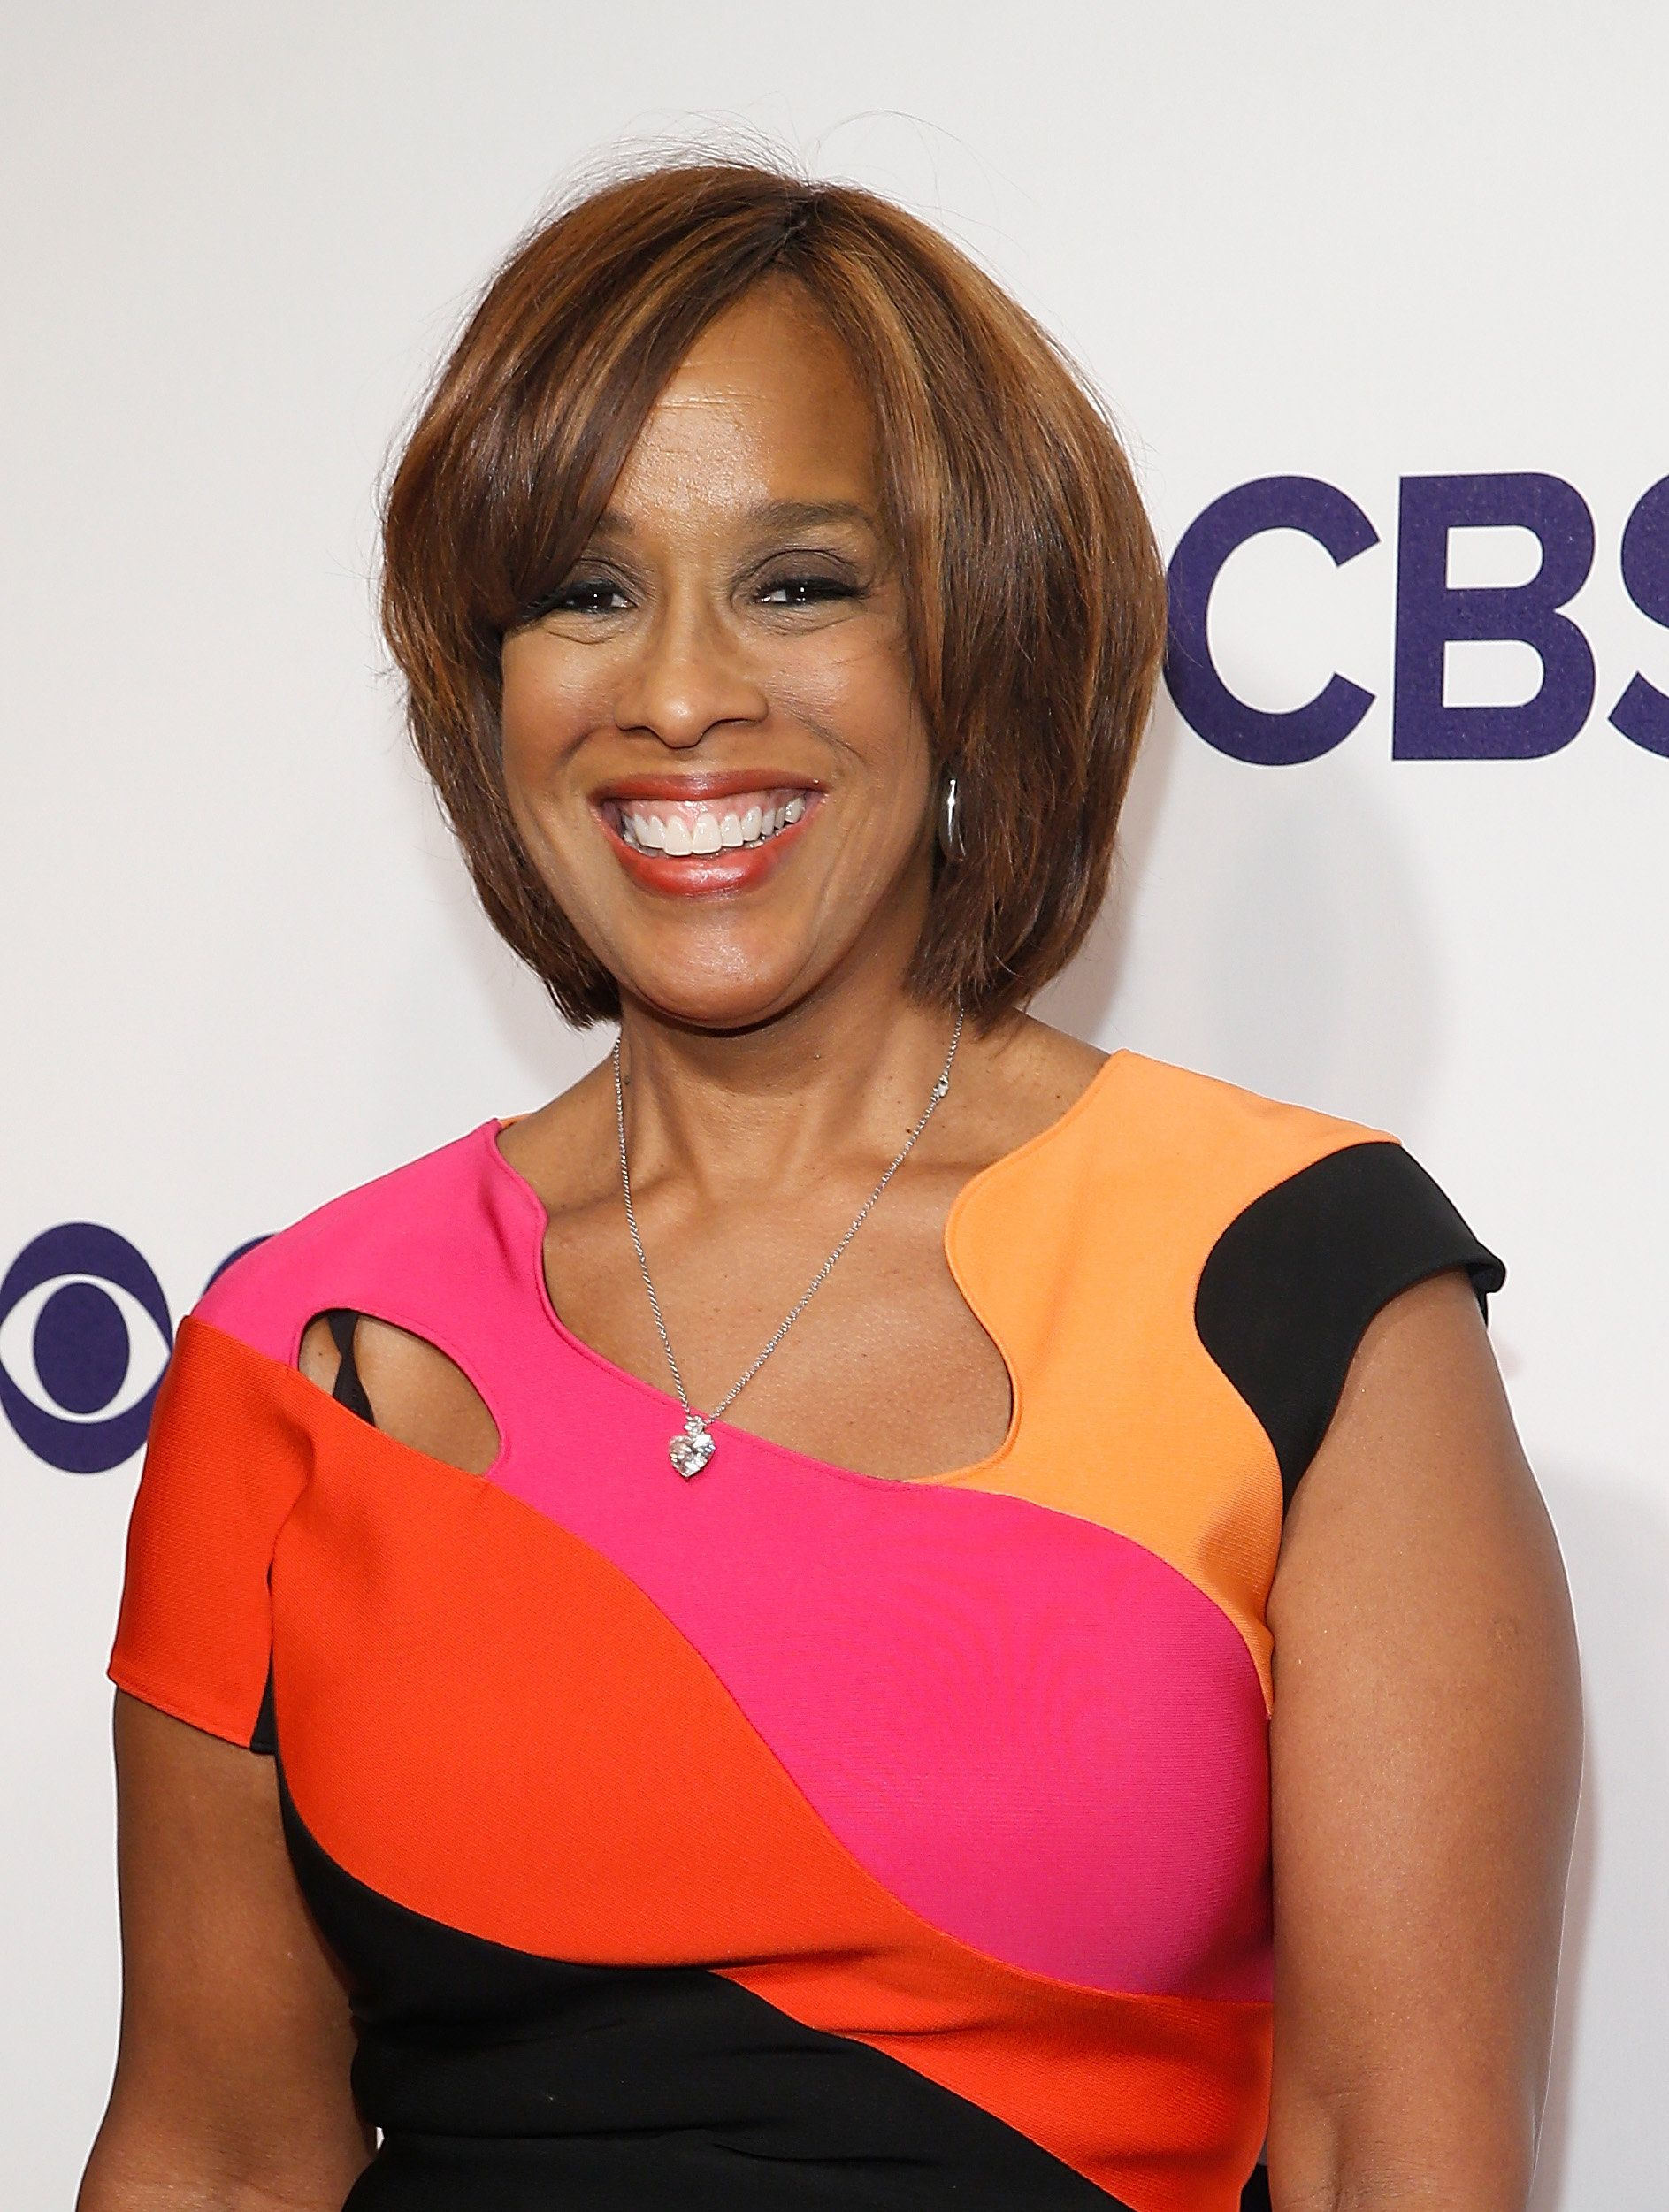 NEW YORK, NY - MAY 17:  Gayle King attends 2017 CBS Upfron at The Plaza Hotel on May 17, 2017 in New York City.  (Photo by John Lamparski/WireImage)